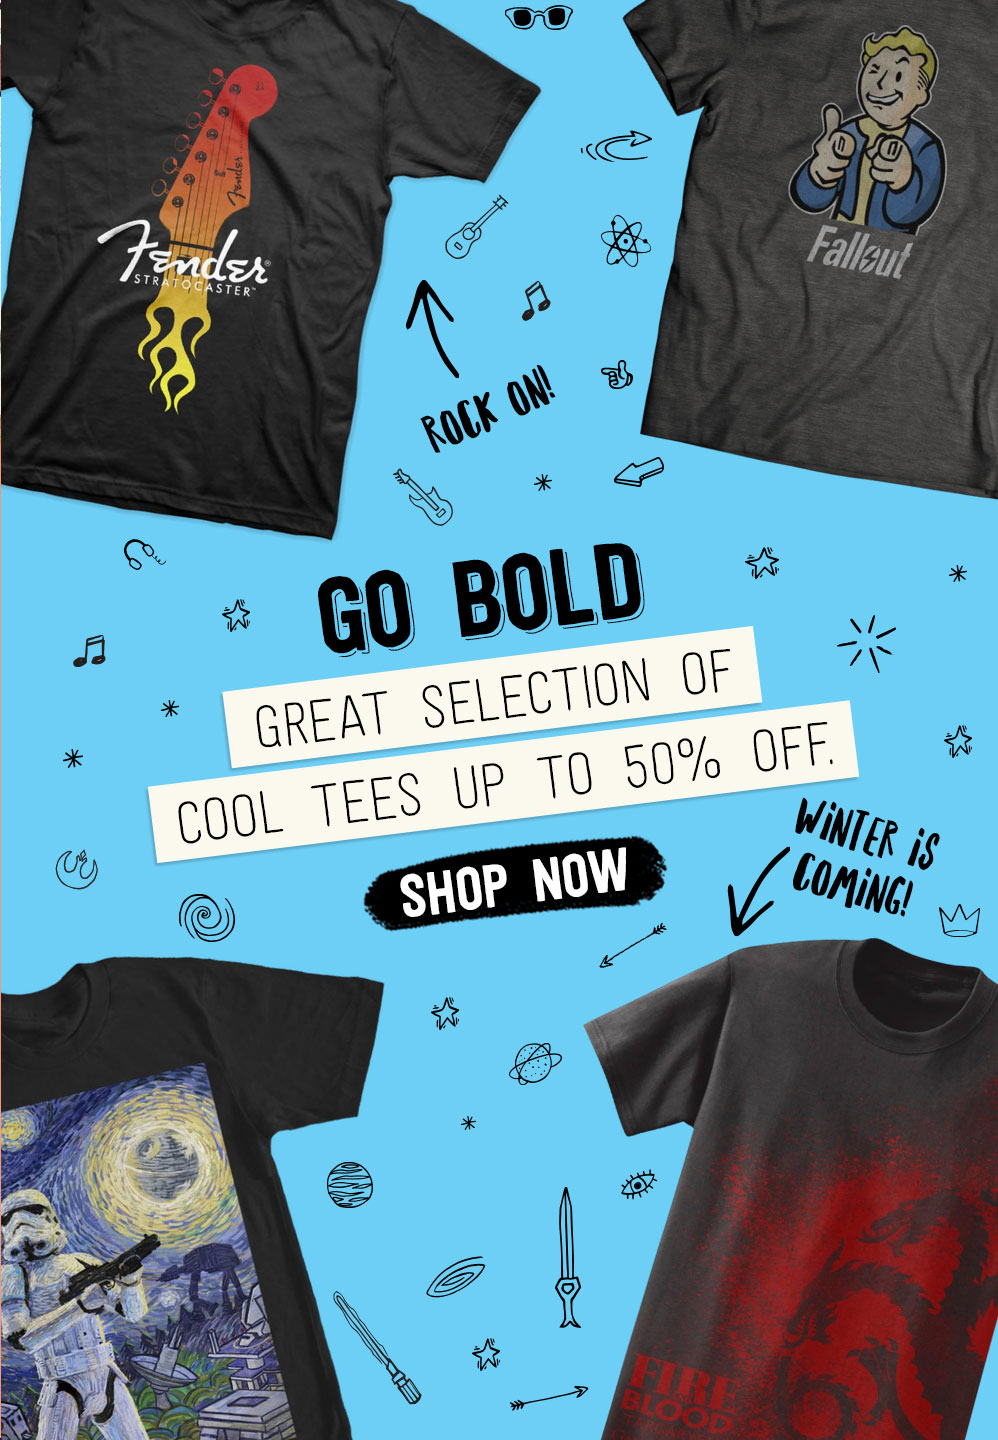 GO BOLD. Great selection of cool tees up to 50% off. Shop Now